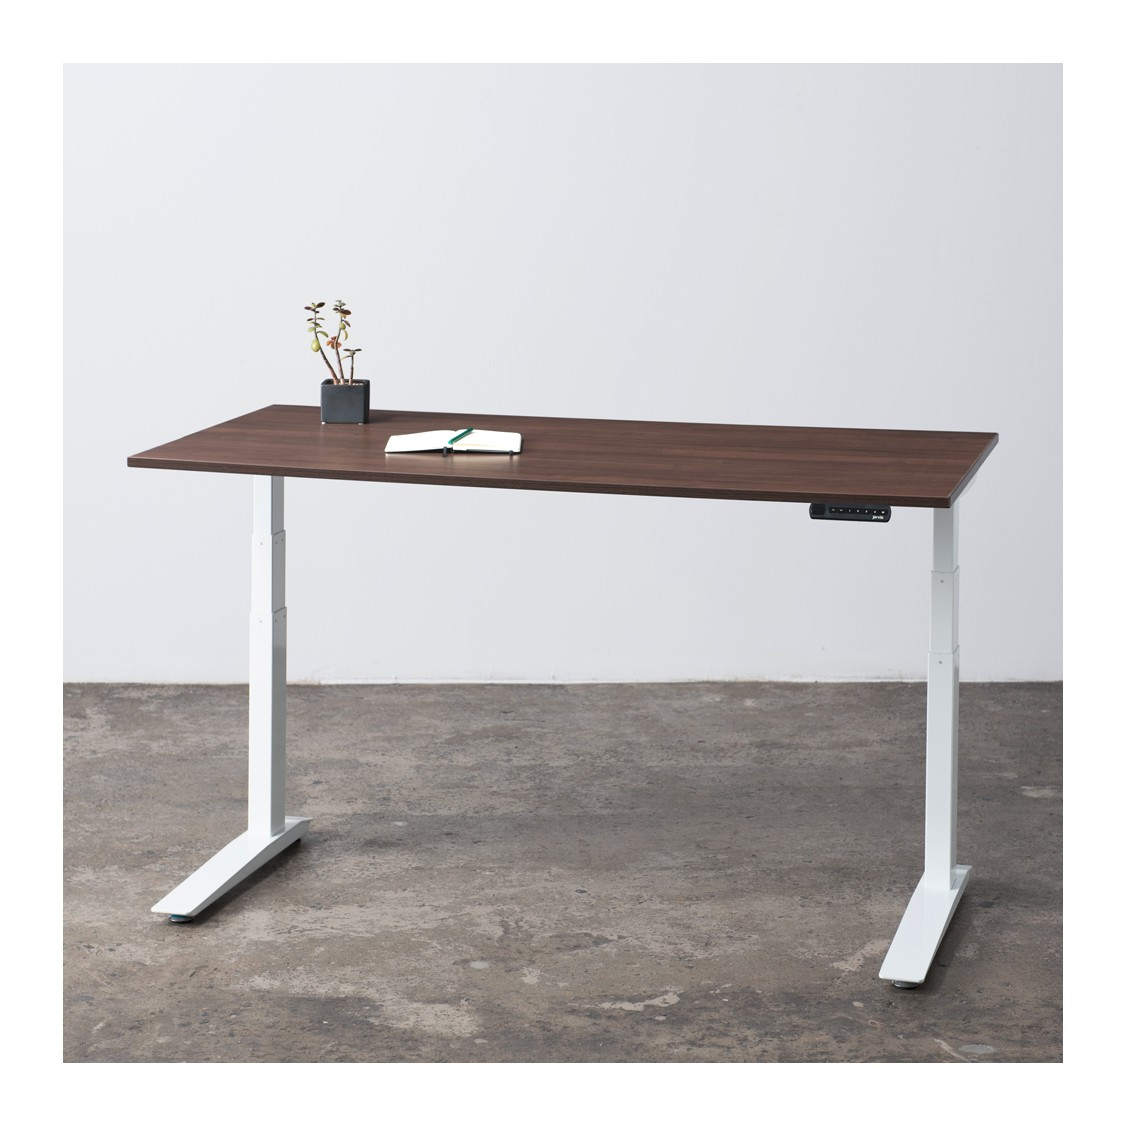 Adjustable height desk with low height computer desk with large adjustable desk with standing desk deals